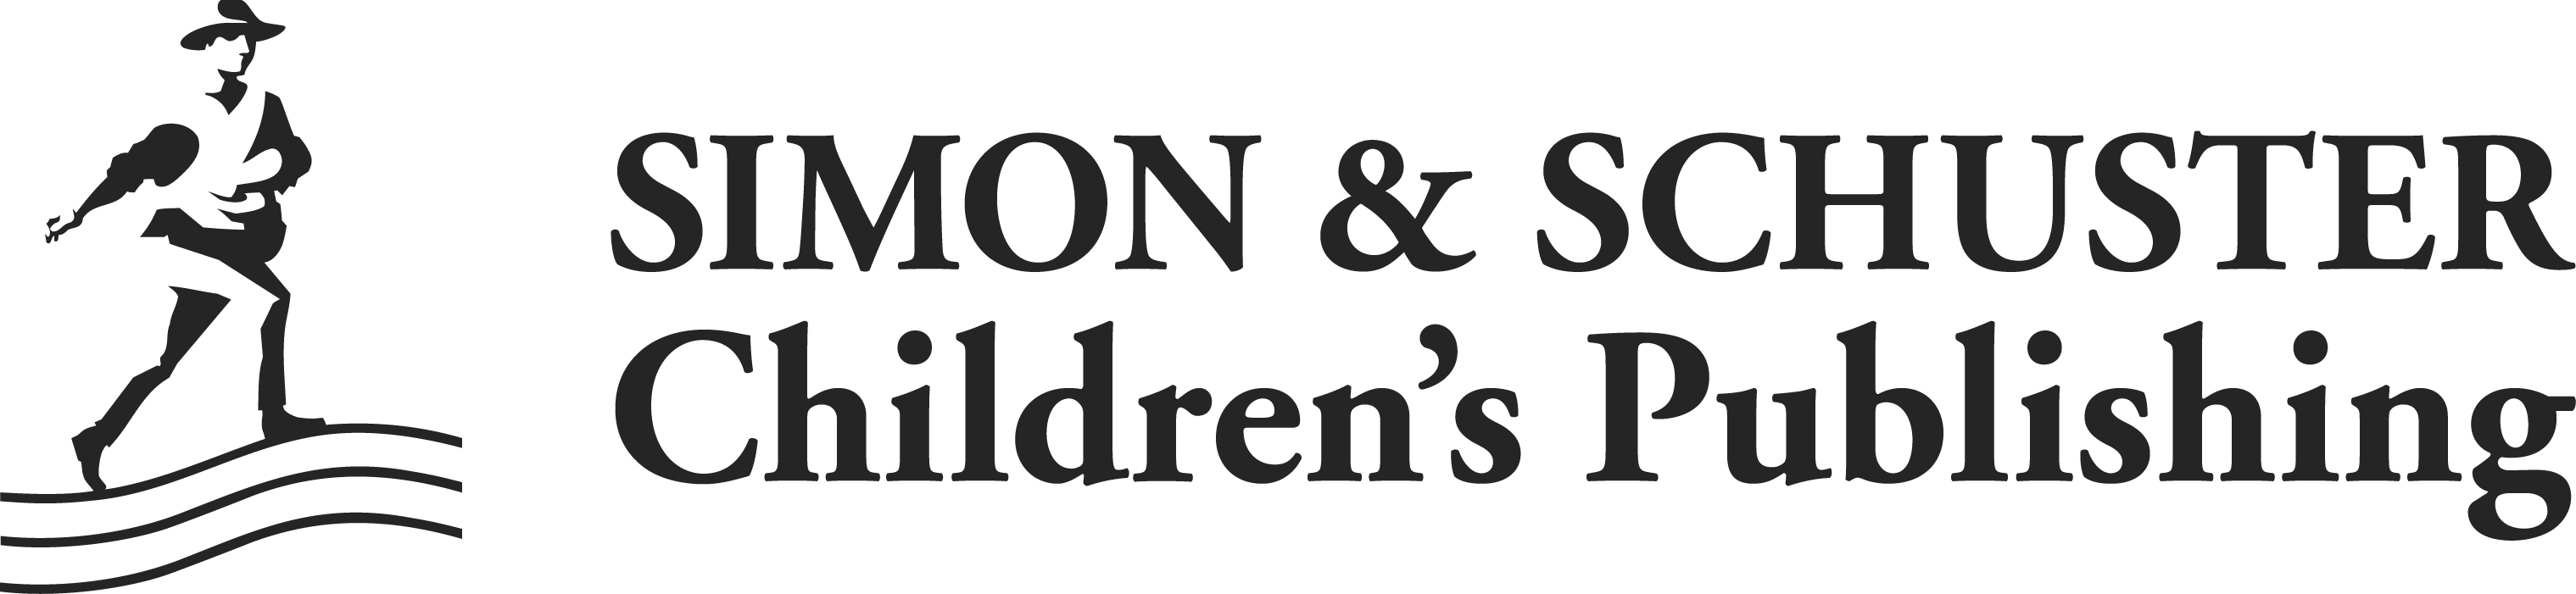 Simon & Schuster Children's Publishing